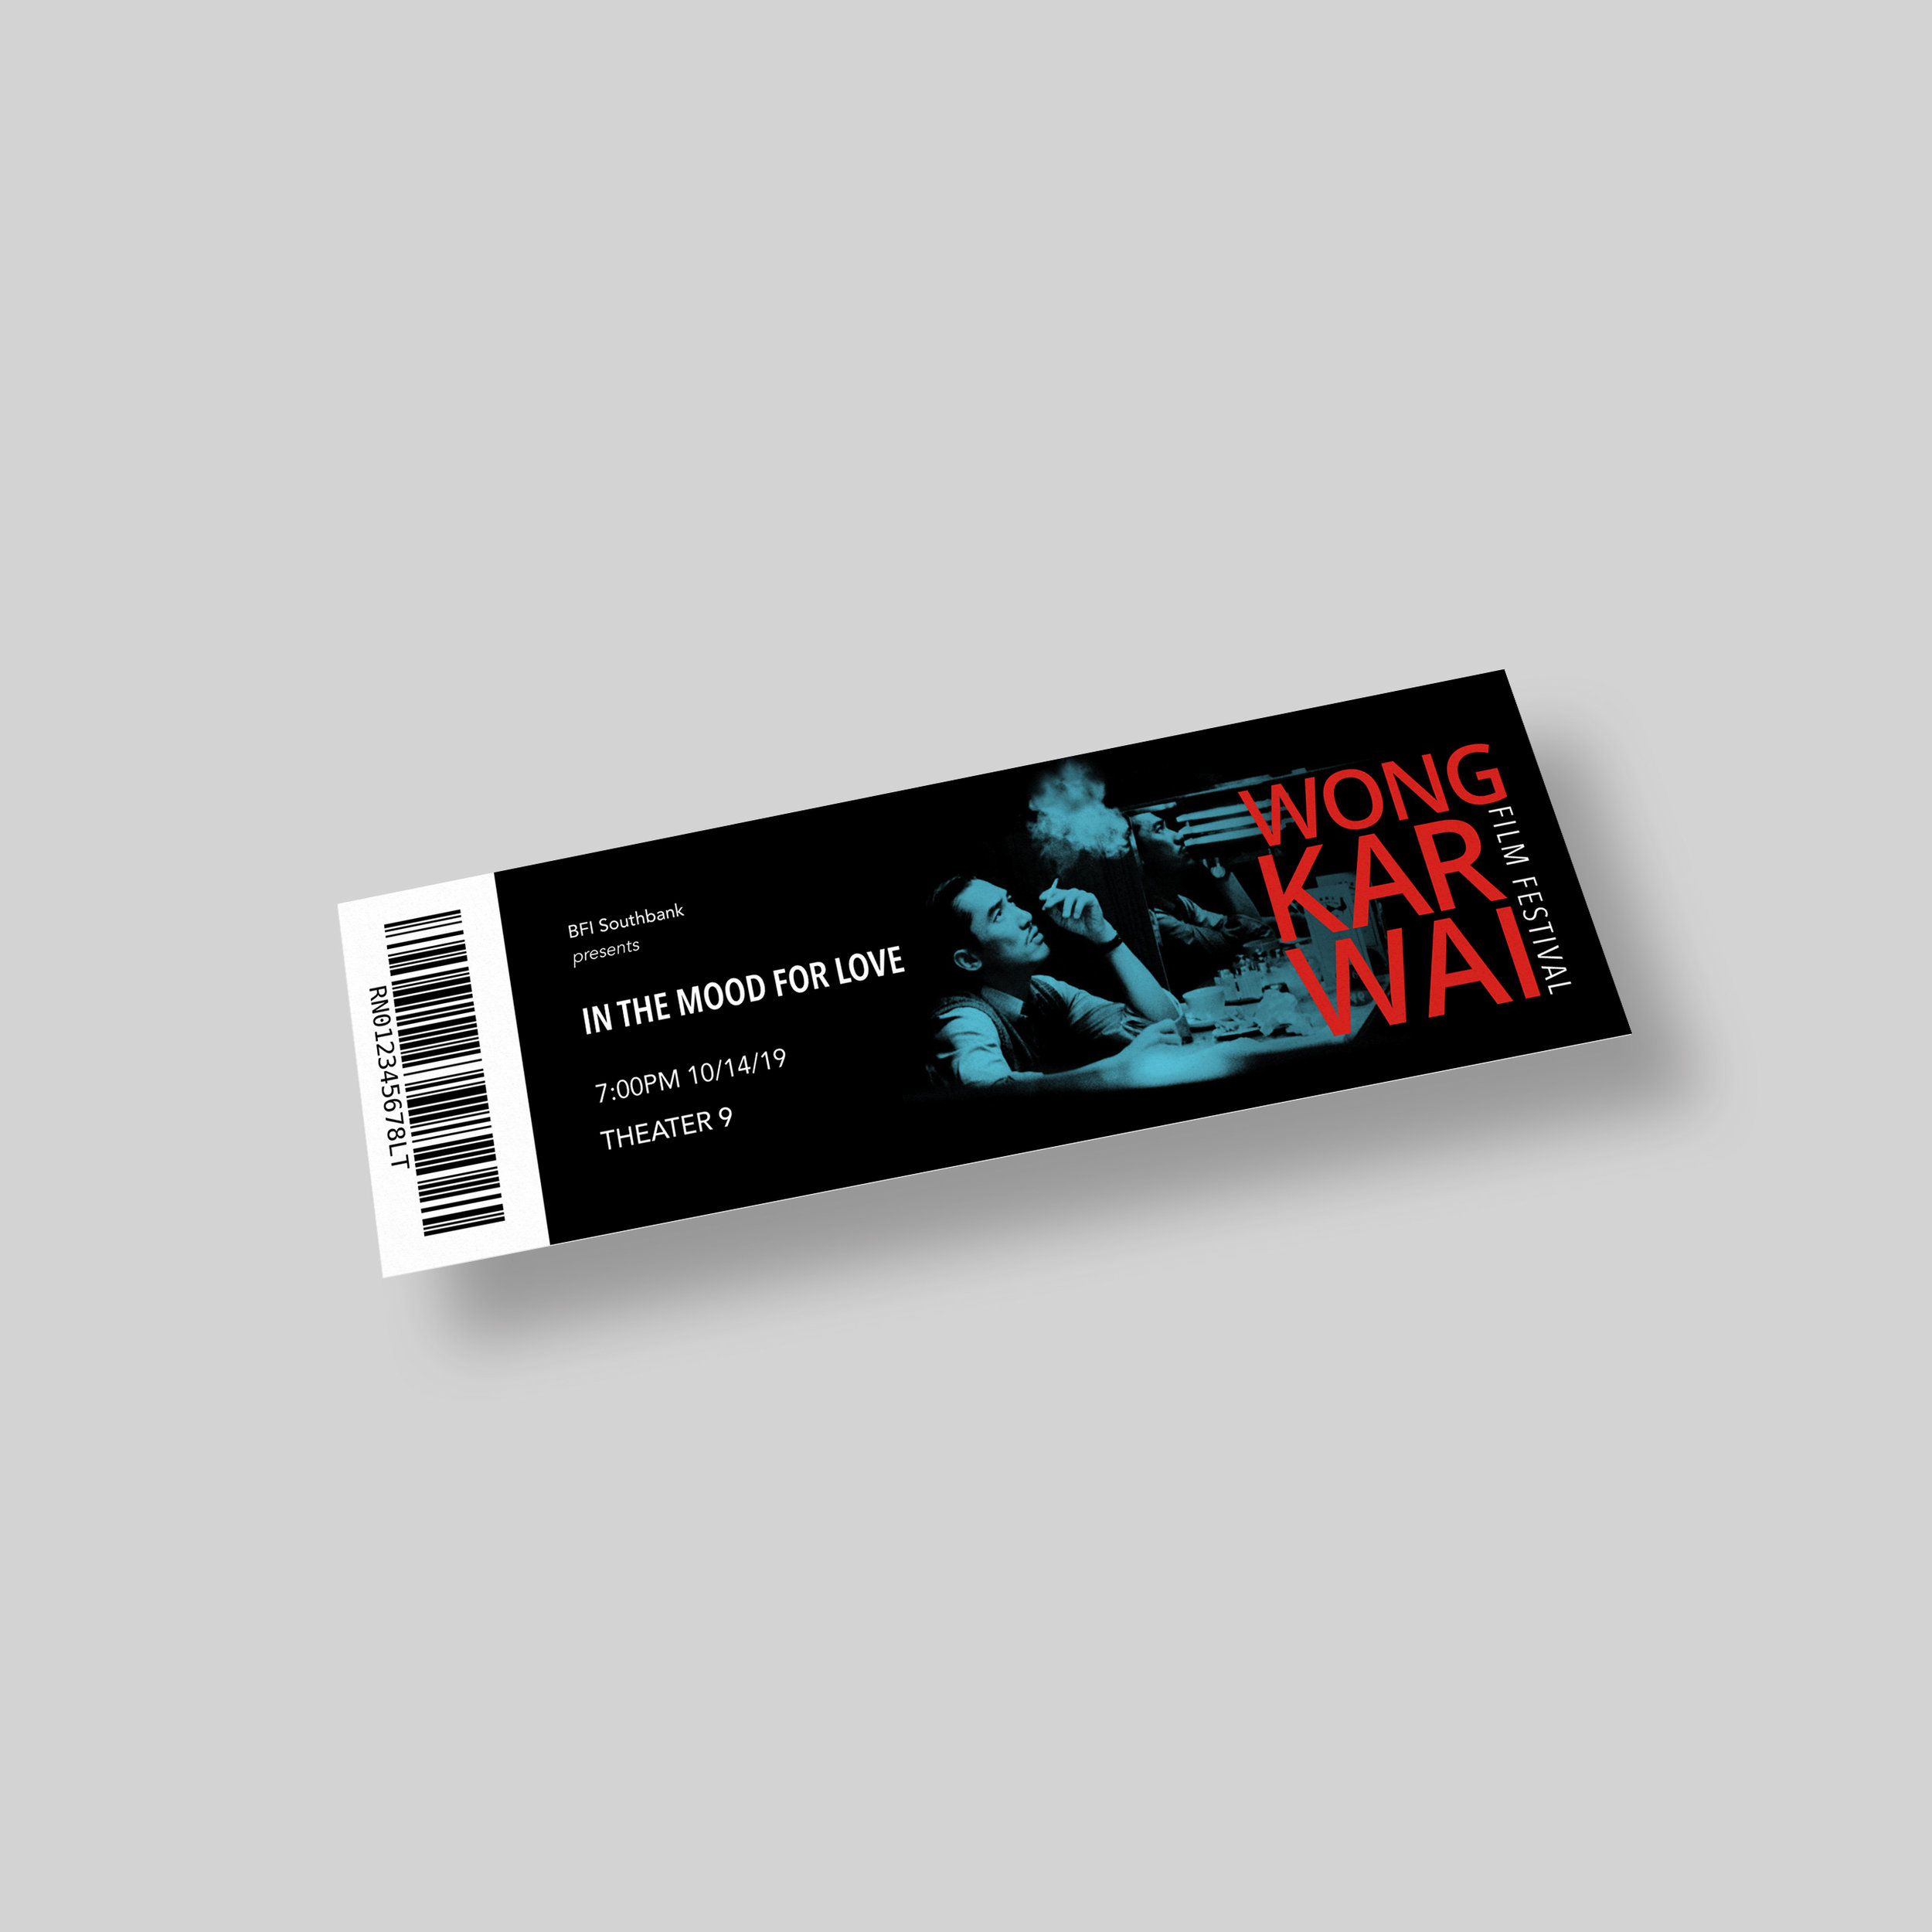 wongkarwaifilmfestival_folio_ticketmockup_forwebsite.jpg